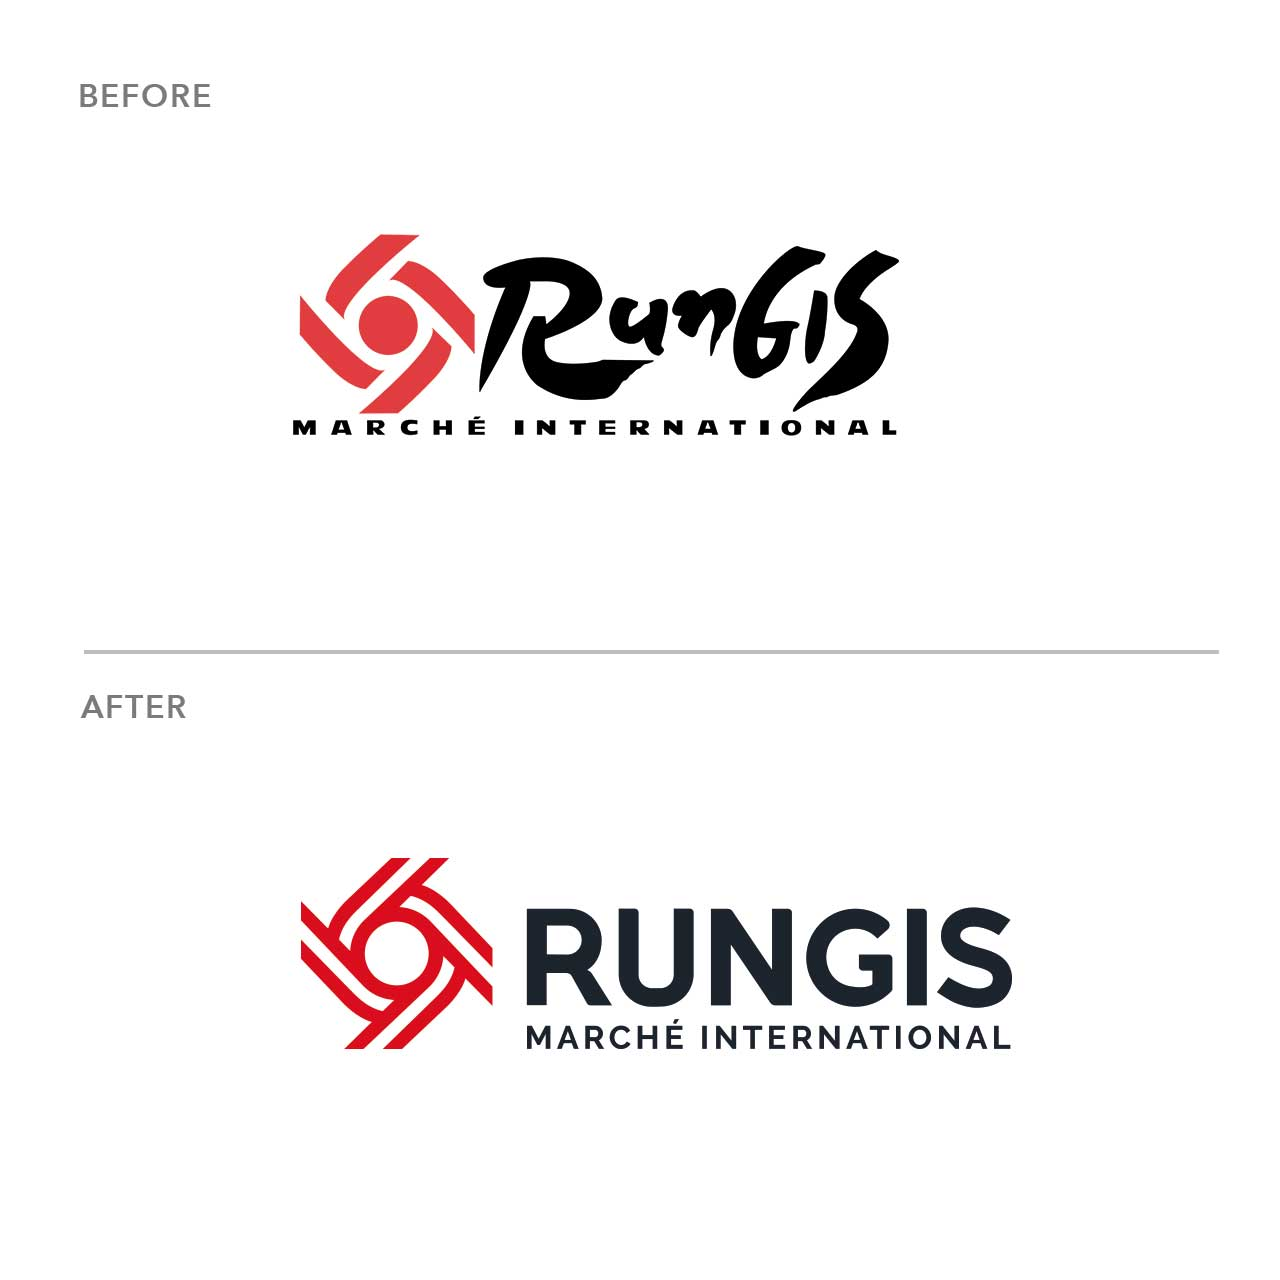 Rungis_Before_After